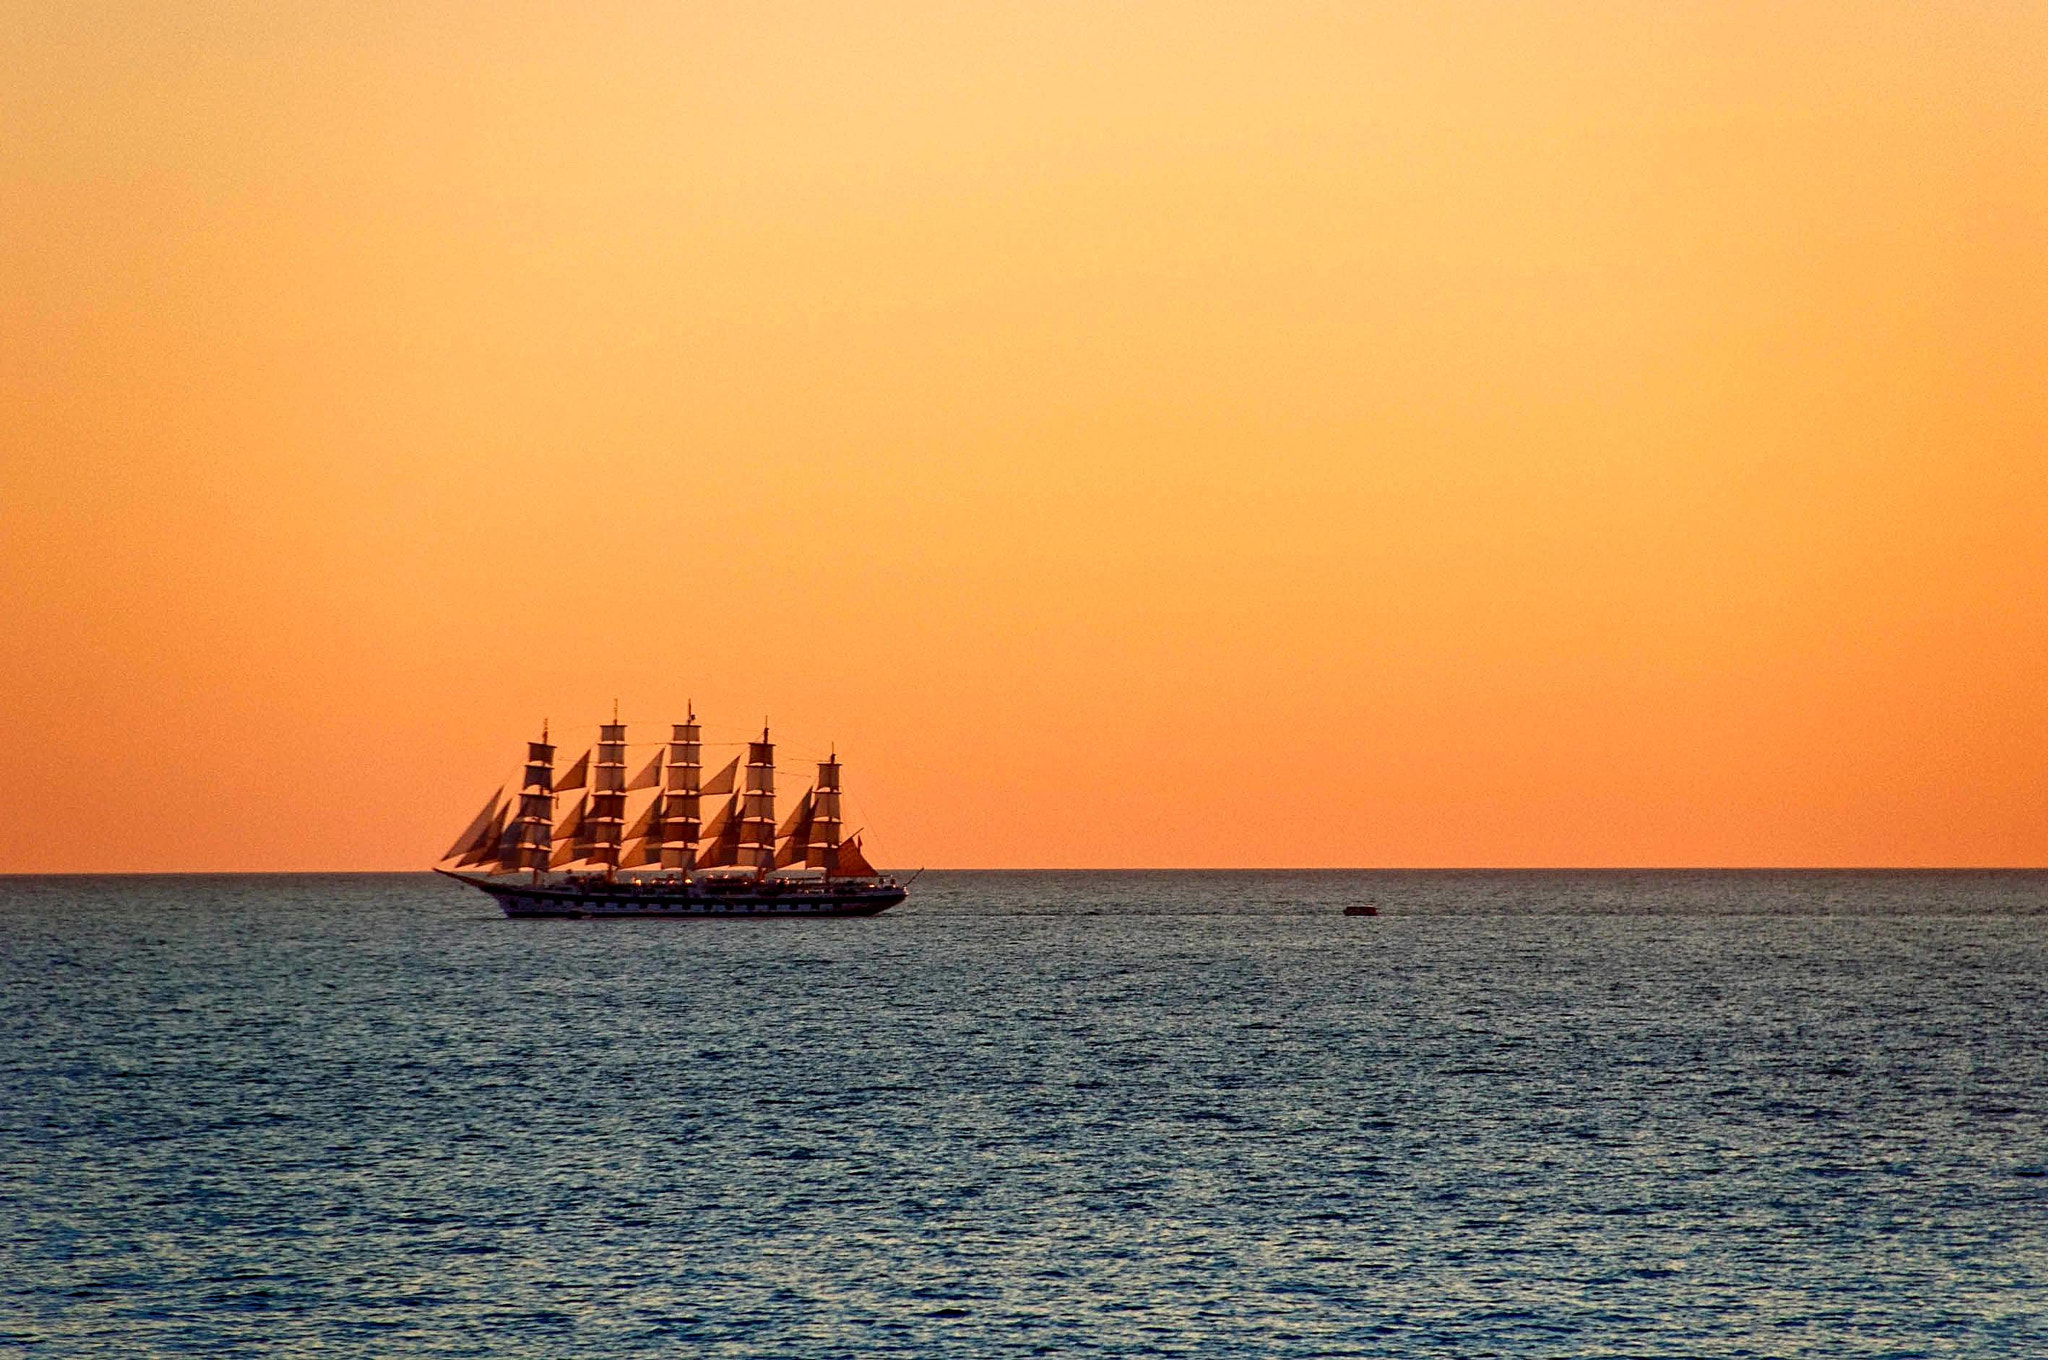 Photograph Adriatic Sea (04) - Royal Clipper by Vlado Ferencic on 500px